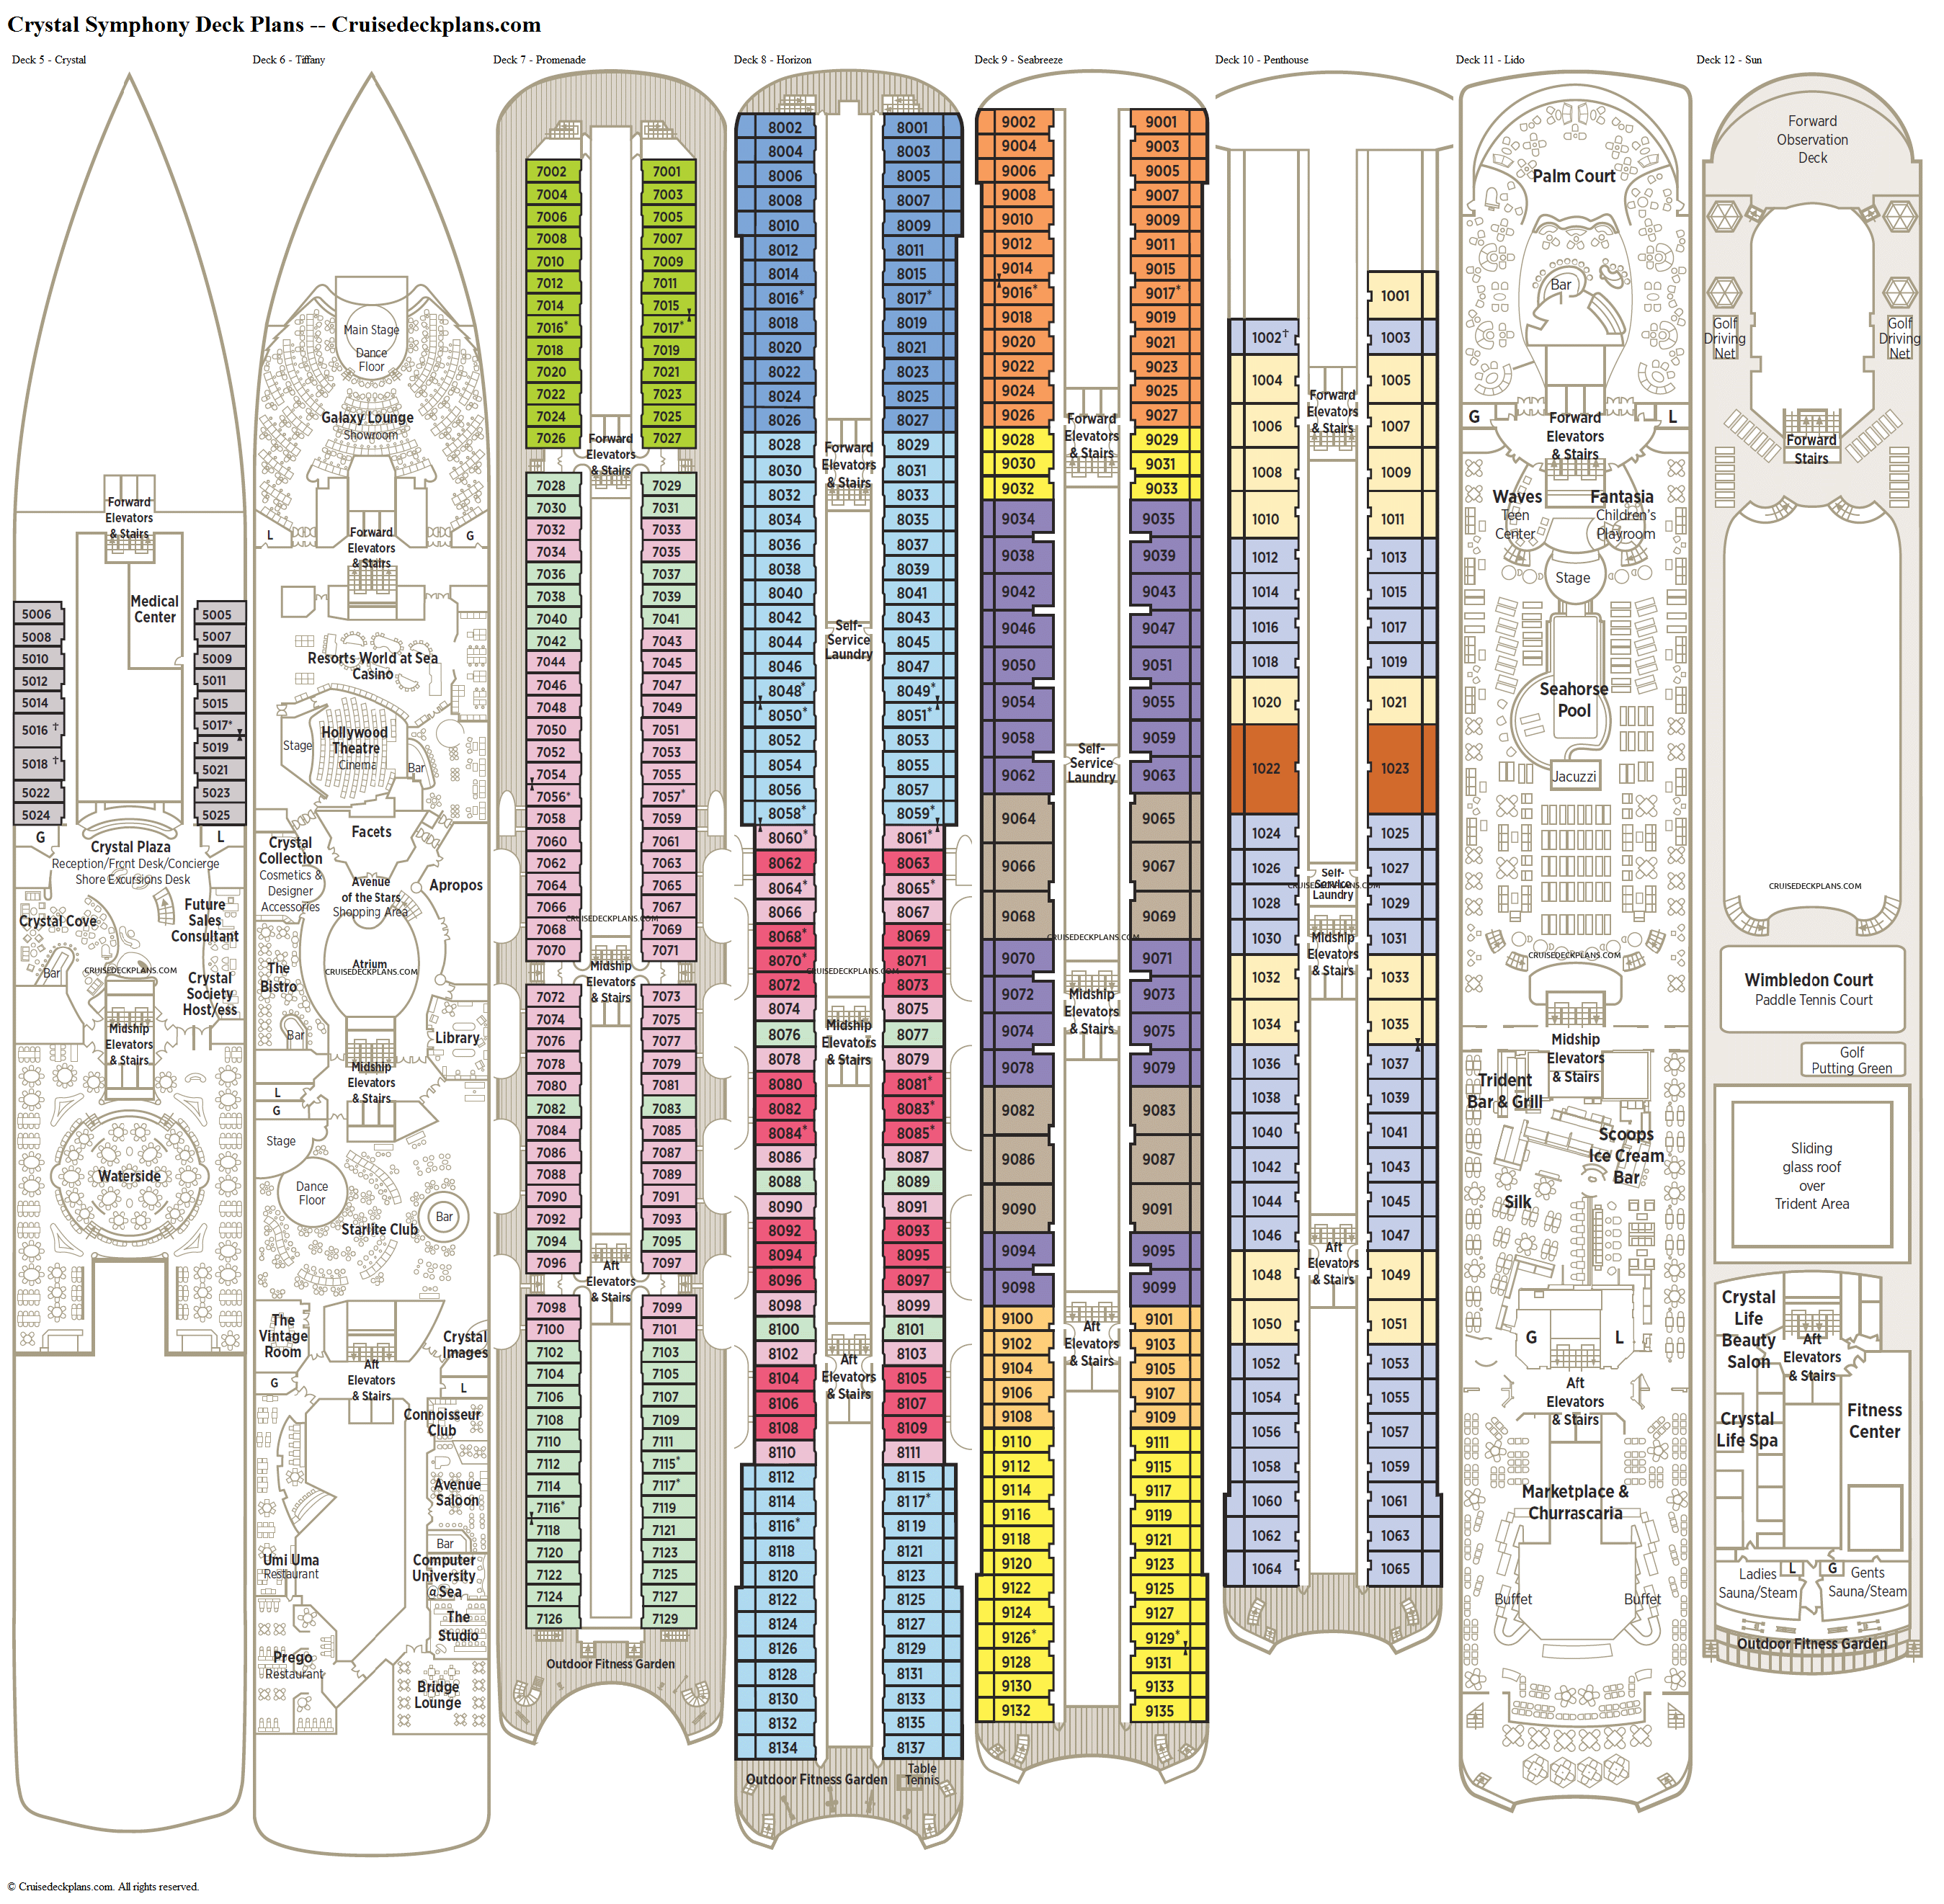 Crystal Symphony deck plans image